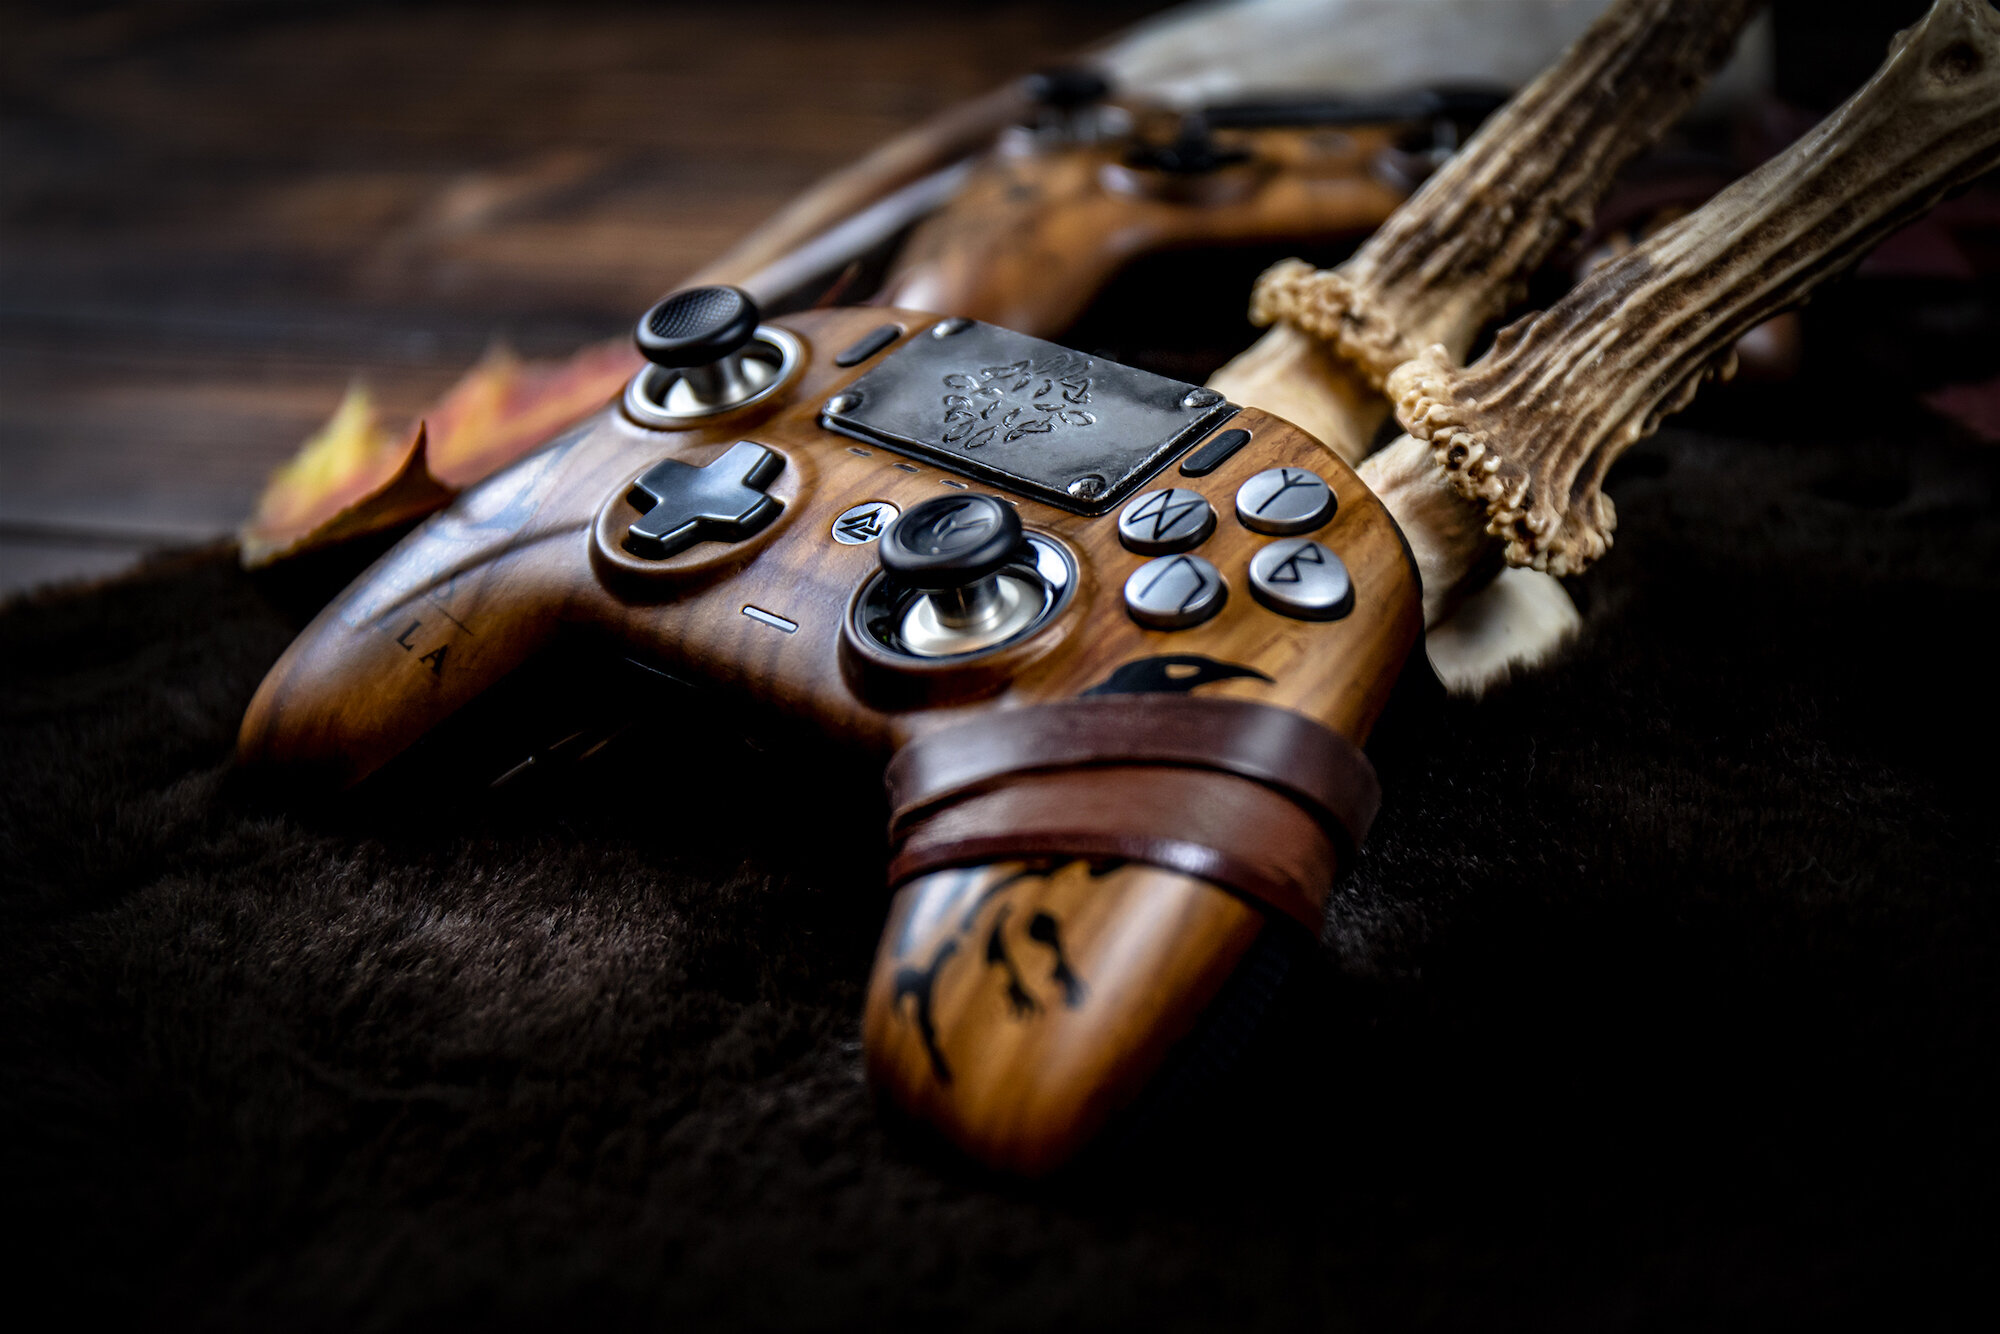 Revolution Pro Controller 3: Assassin's Creed Valhalla